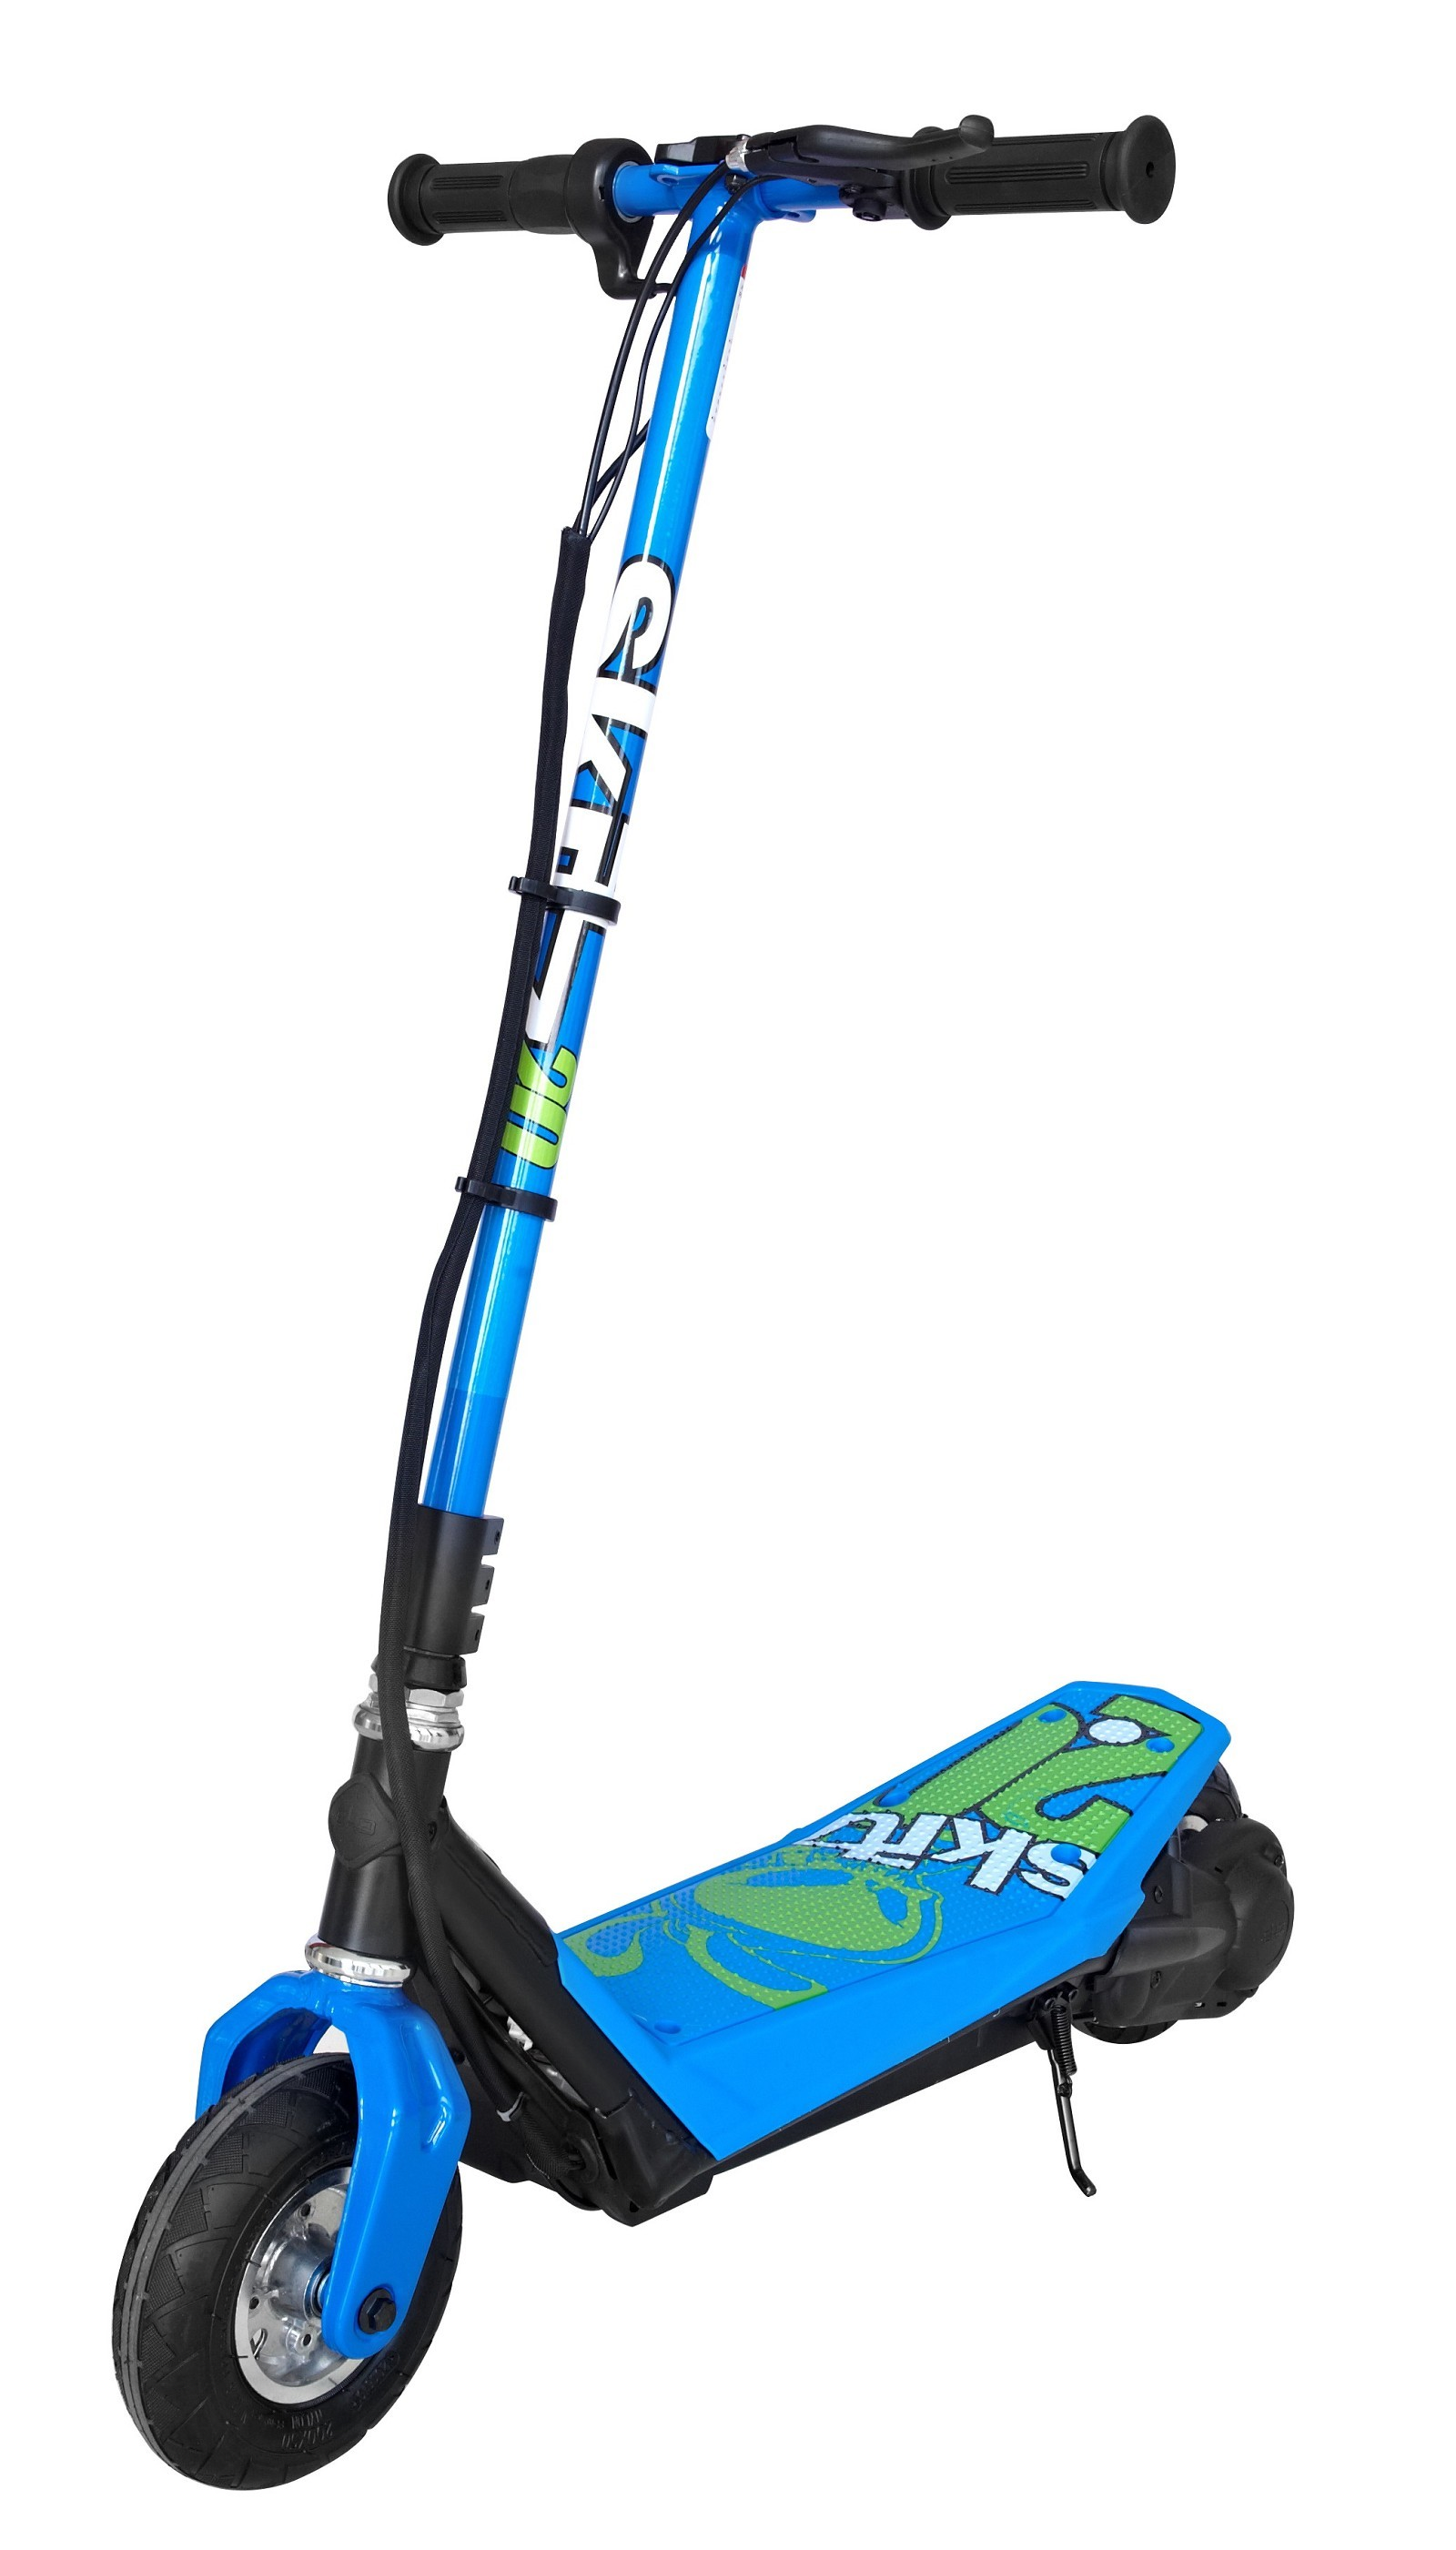 Best Electric Scooter for Kids in Australia | Kids Pretend Toys